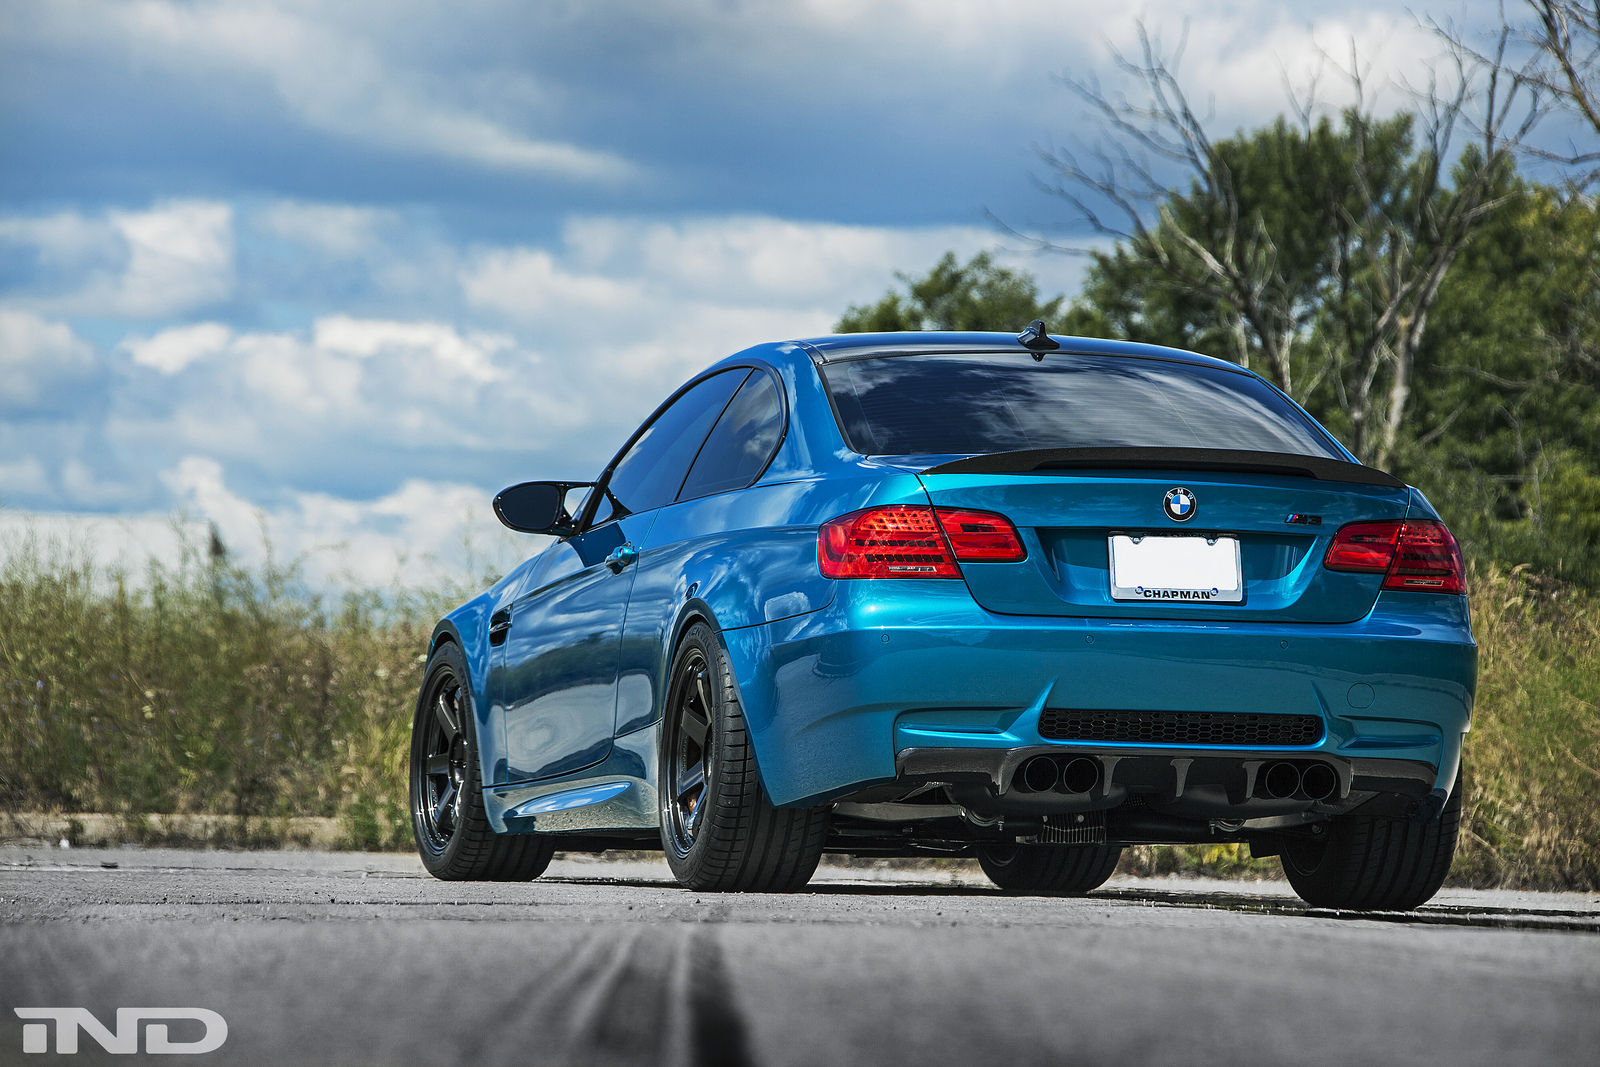 Atlantis Blue Bmw E M From Ind Looks Stunning Photo Gallery on Bmw M3 E92